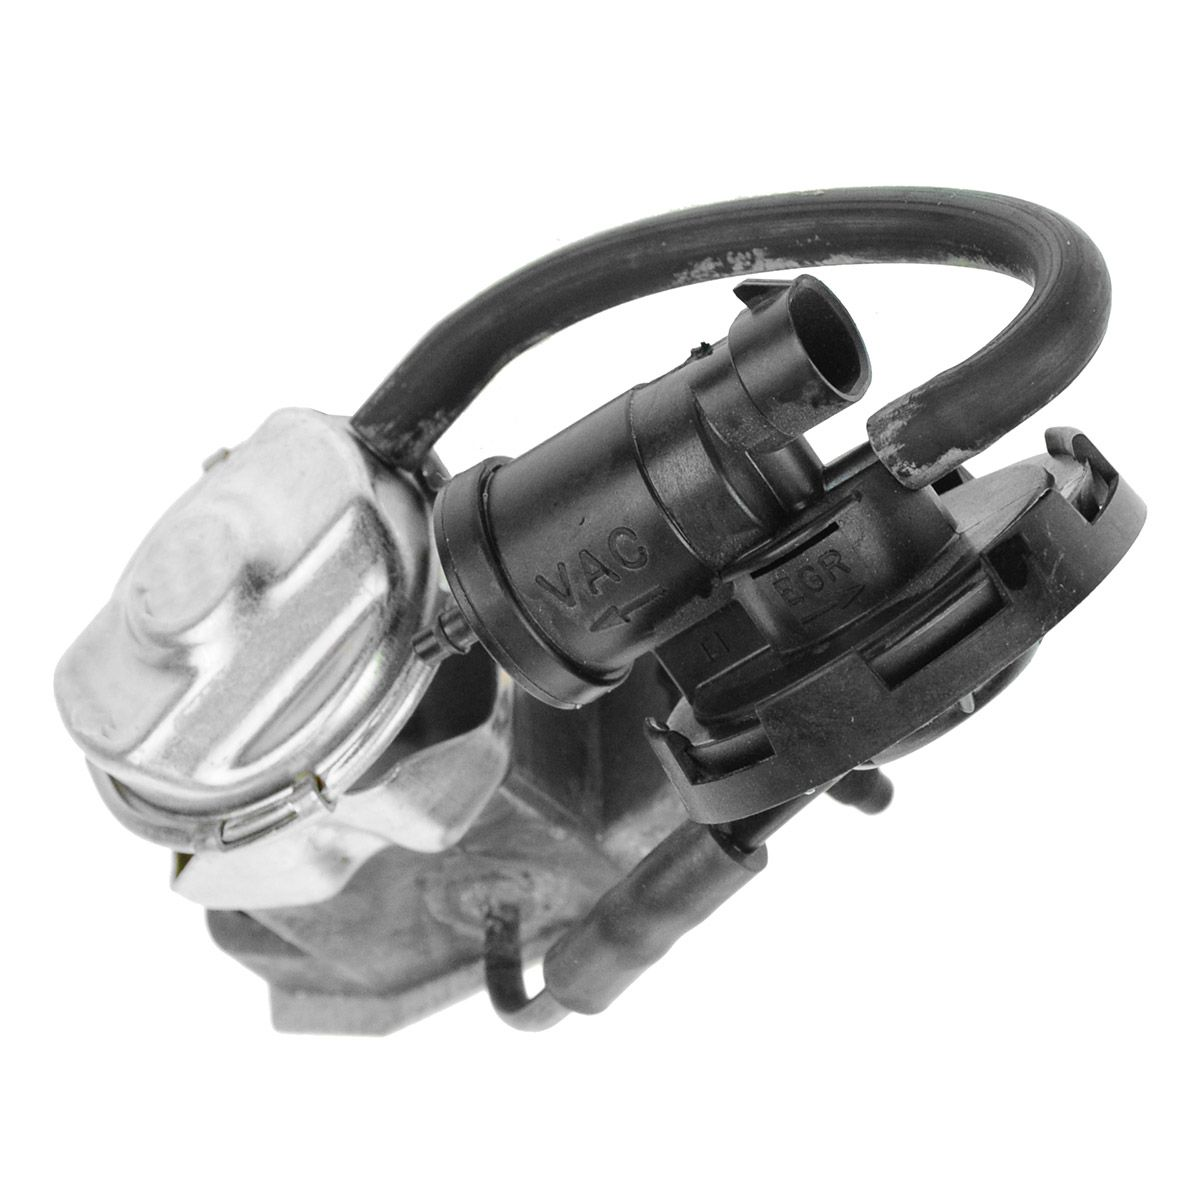 emissions egr valve assembly for dodge ram dakota van grand cherokee wagoneer ebay. Black Bedroom Furniture Sets. Home Design Ideas